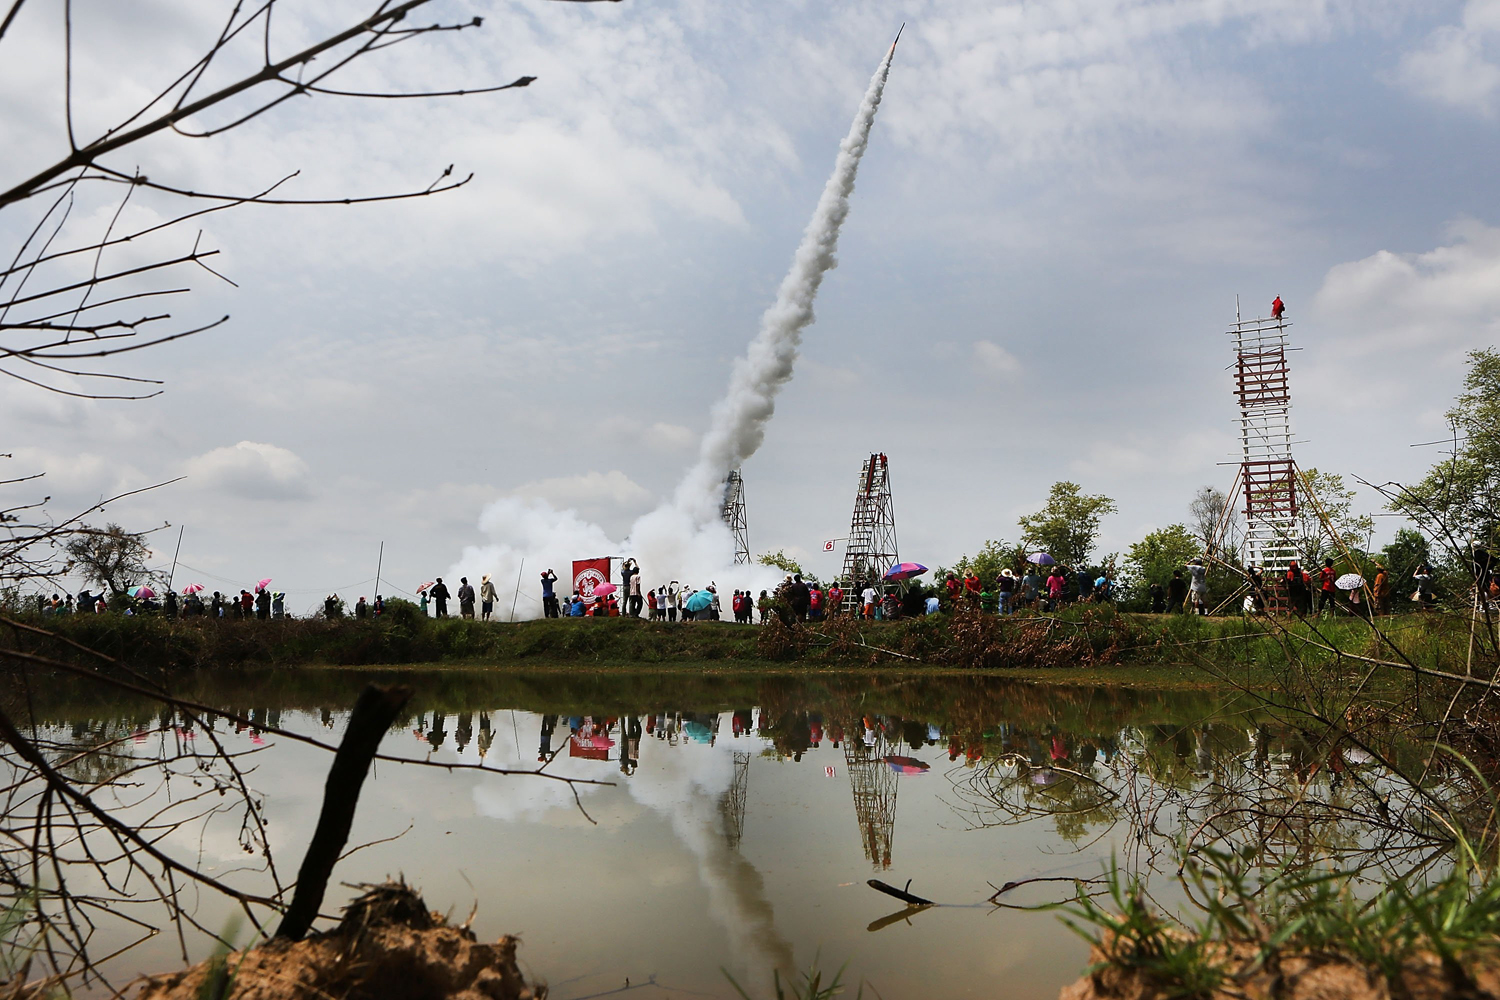 May 11, 2014. Yasothon resident look on as huge, handmade rockets are launched into the air during the Bun Bang Fai festival in Yasothon, Thailand.